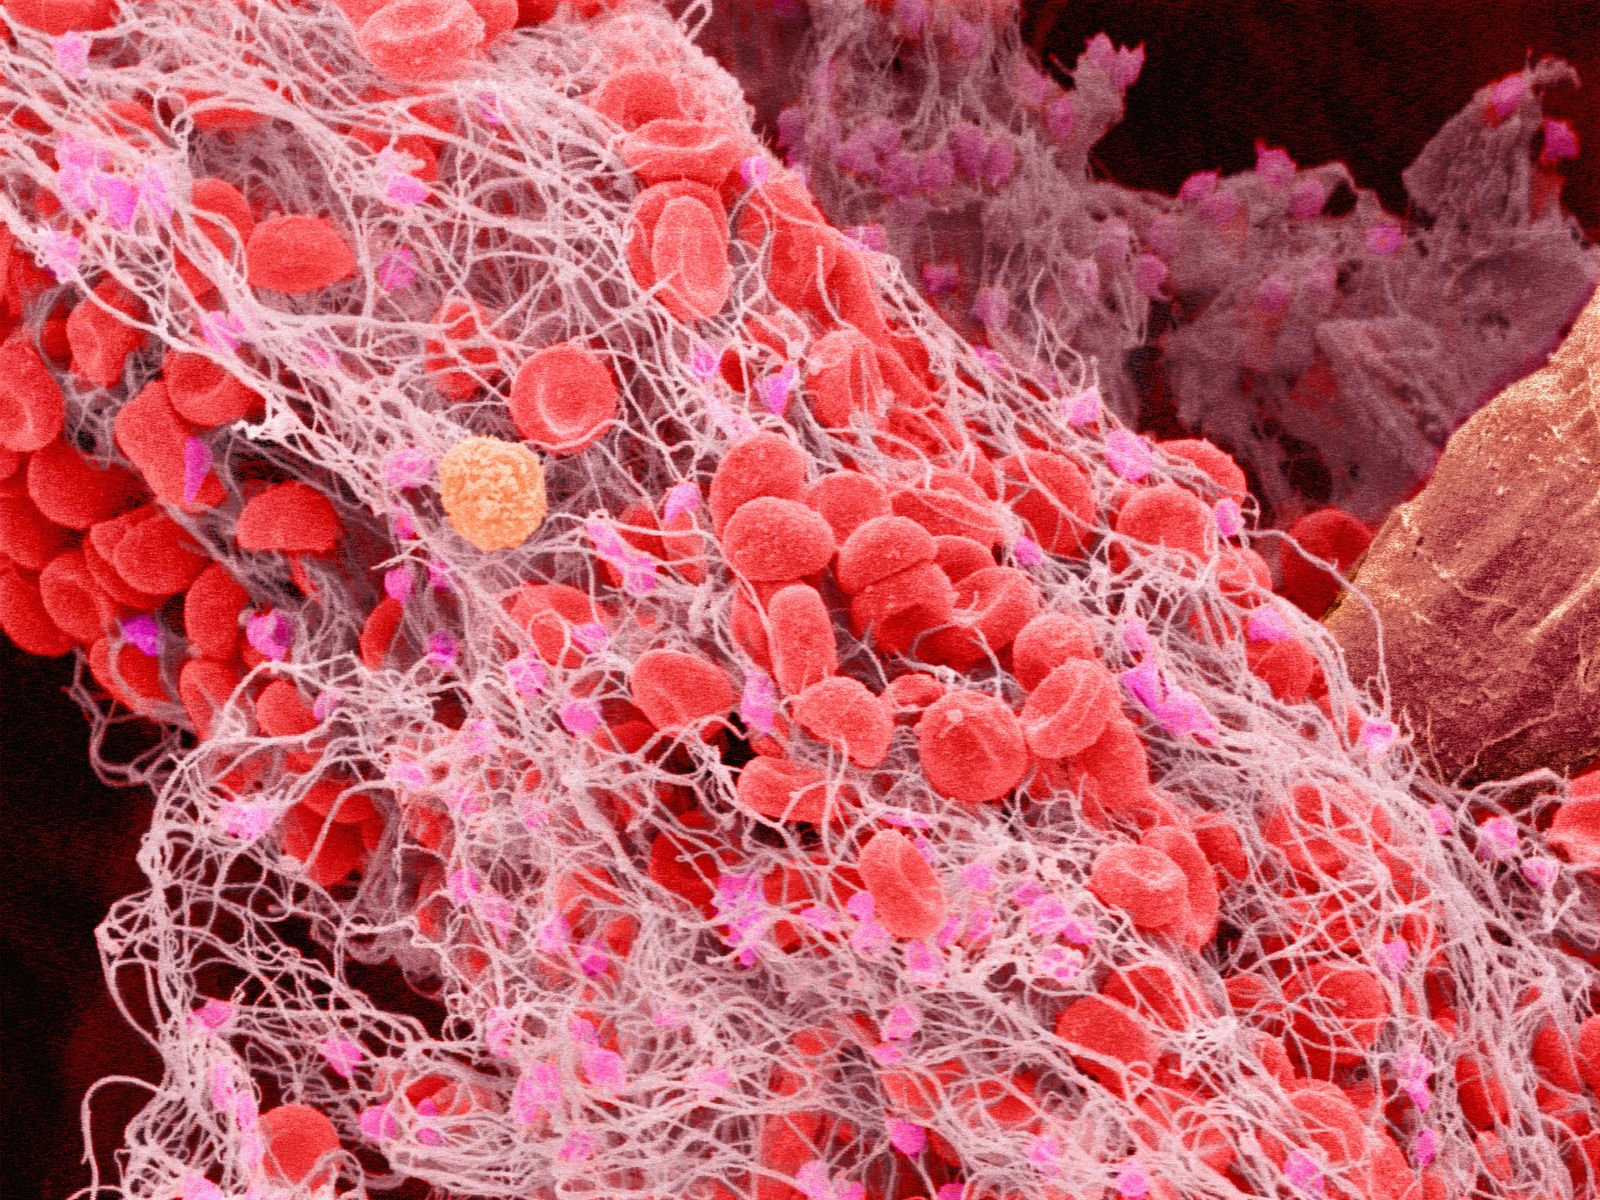 Scanning electron micrograph of a blood clot in human blood